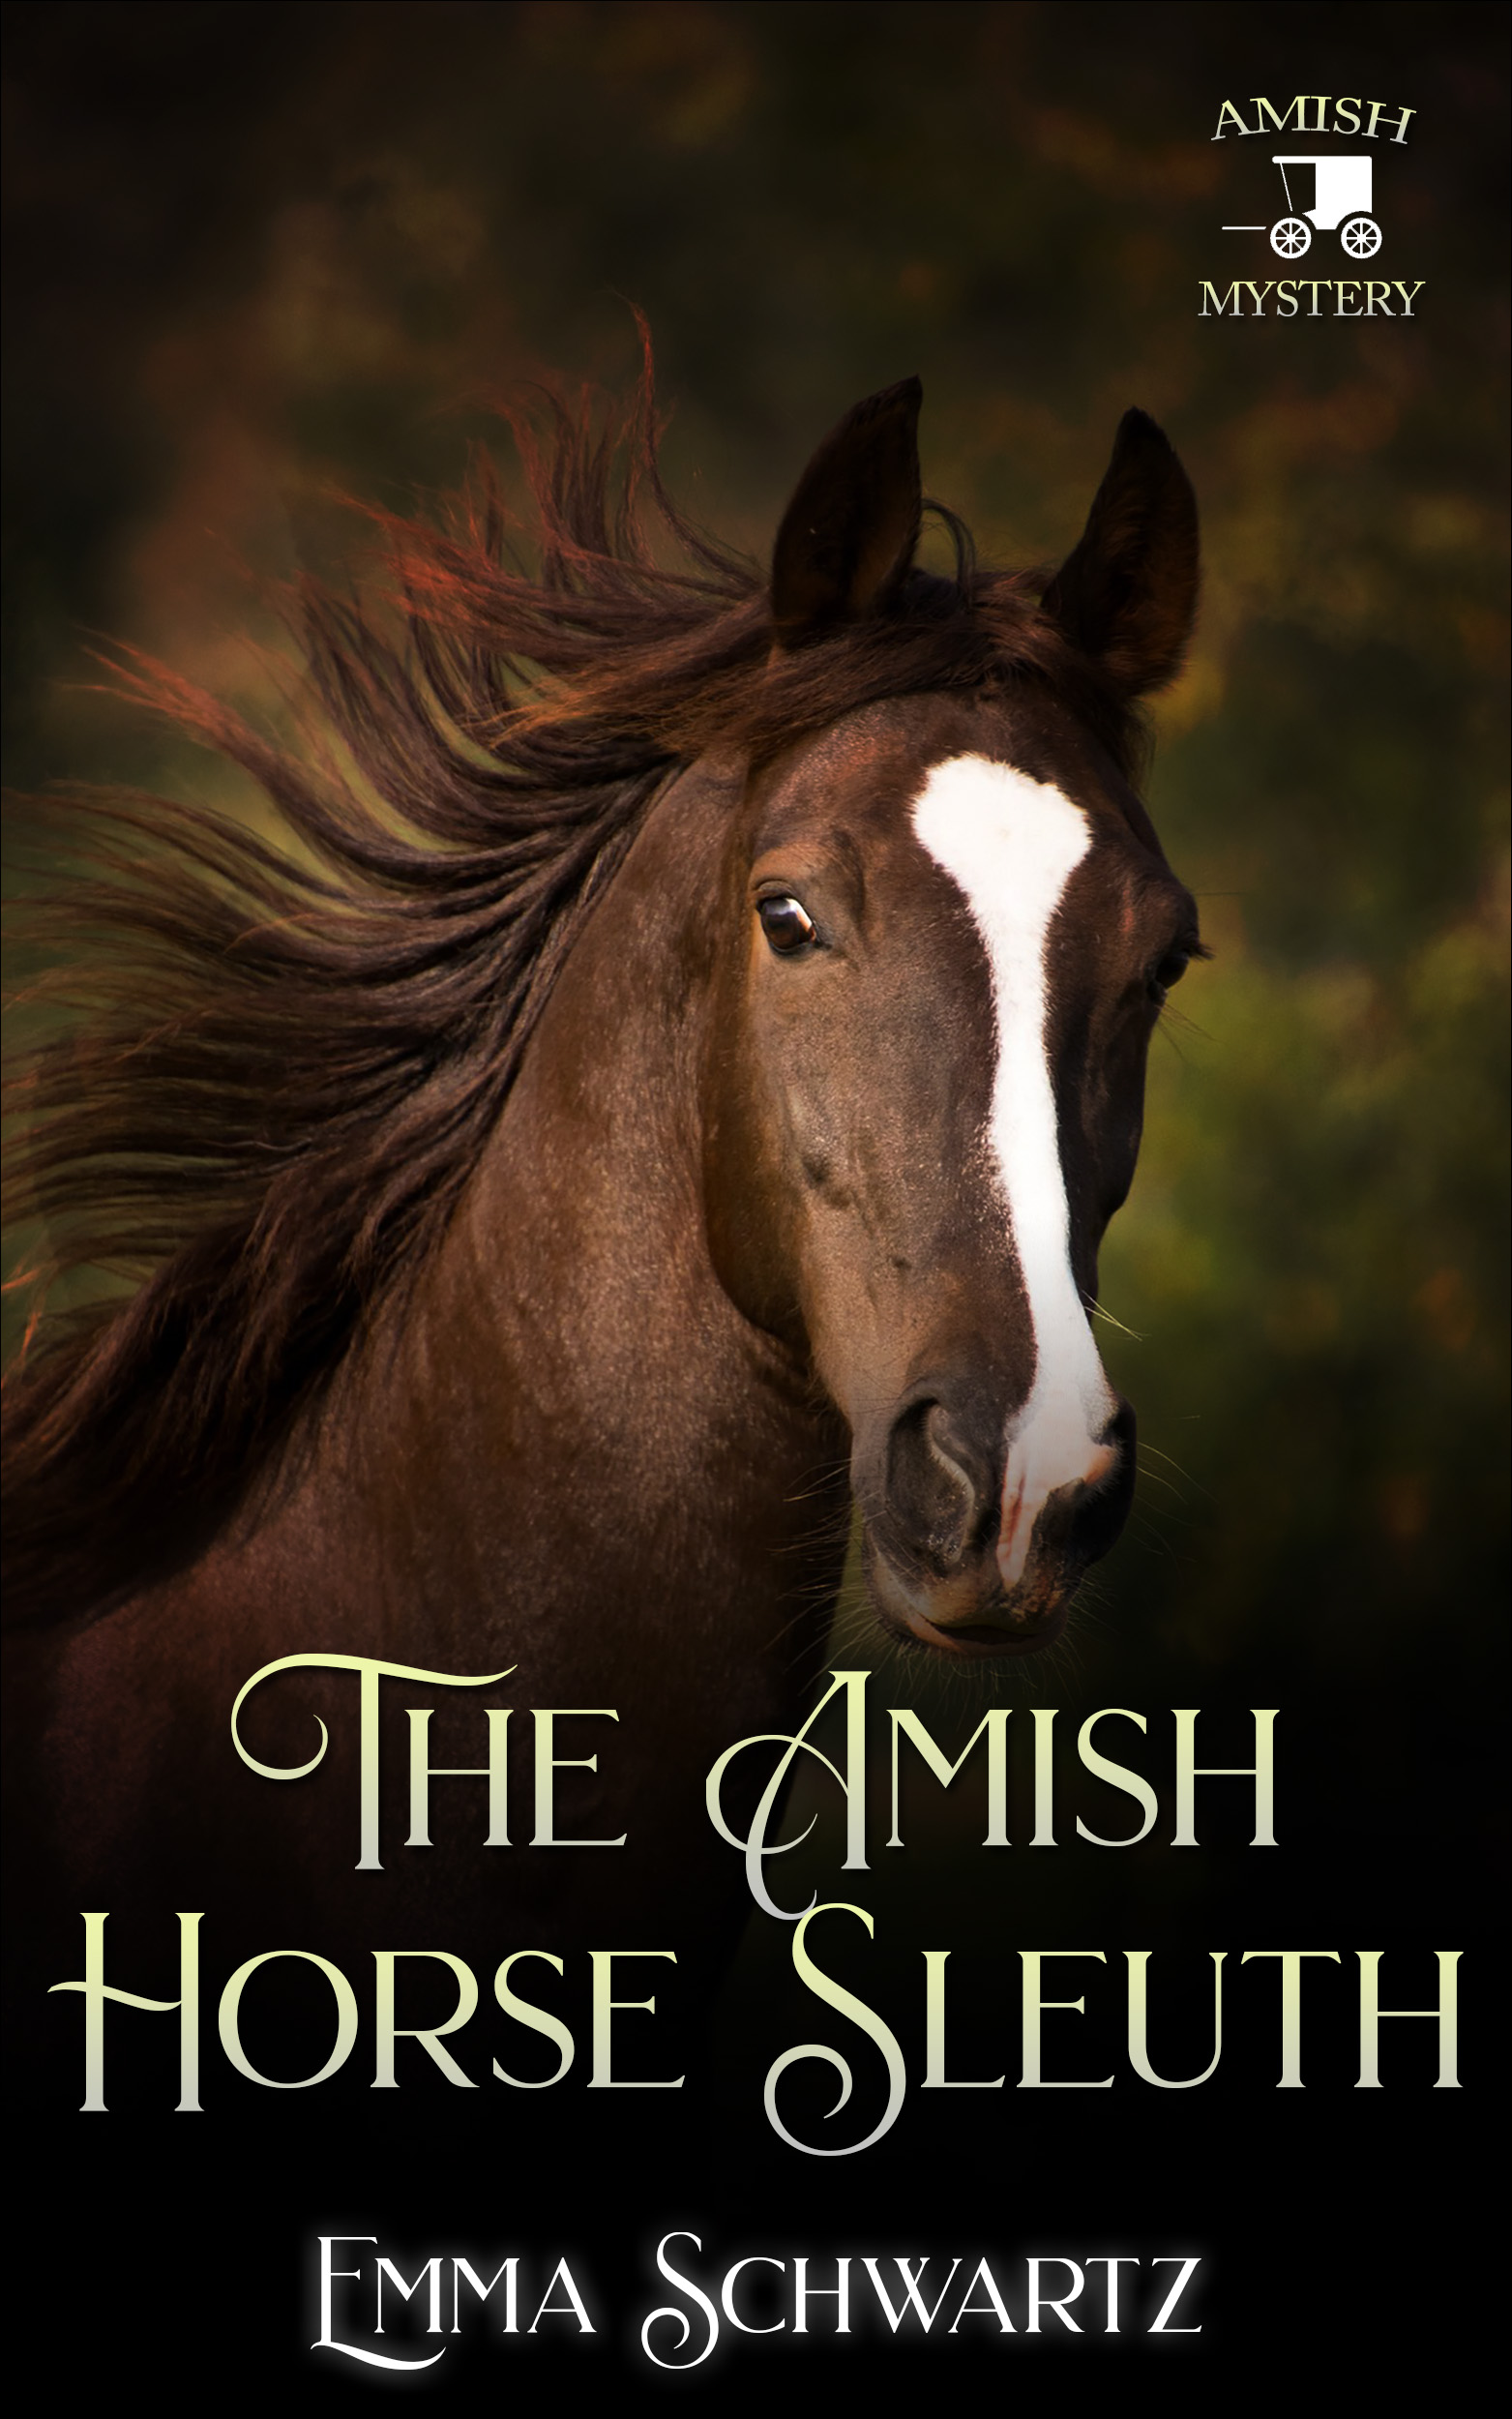 The Amish Horse Sleuth